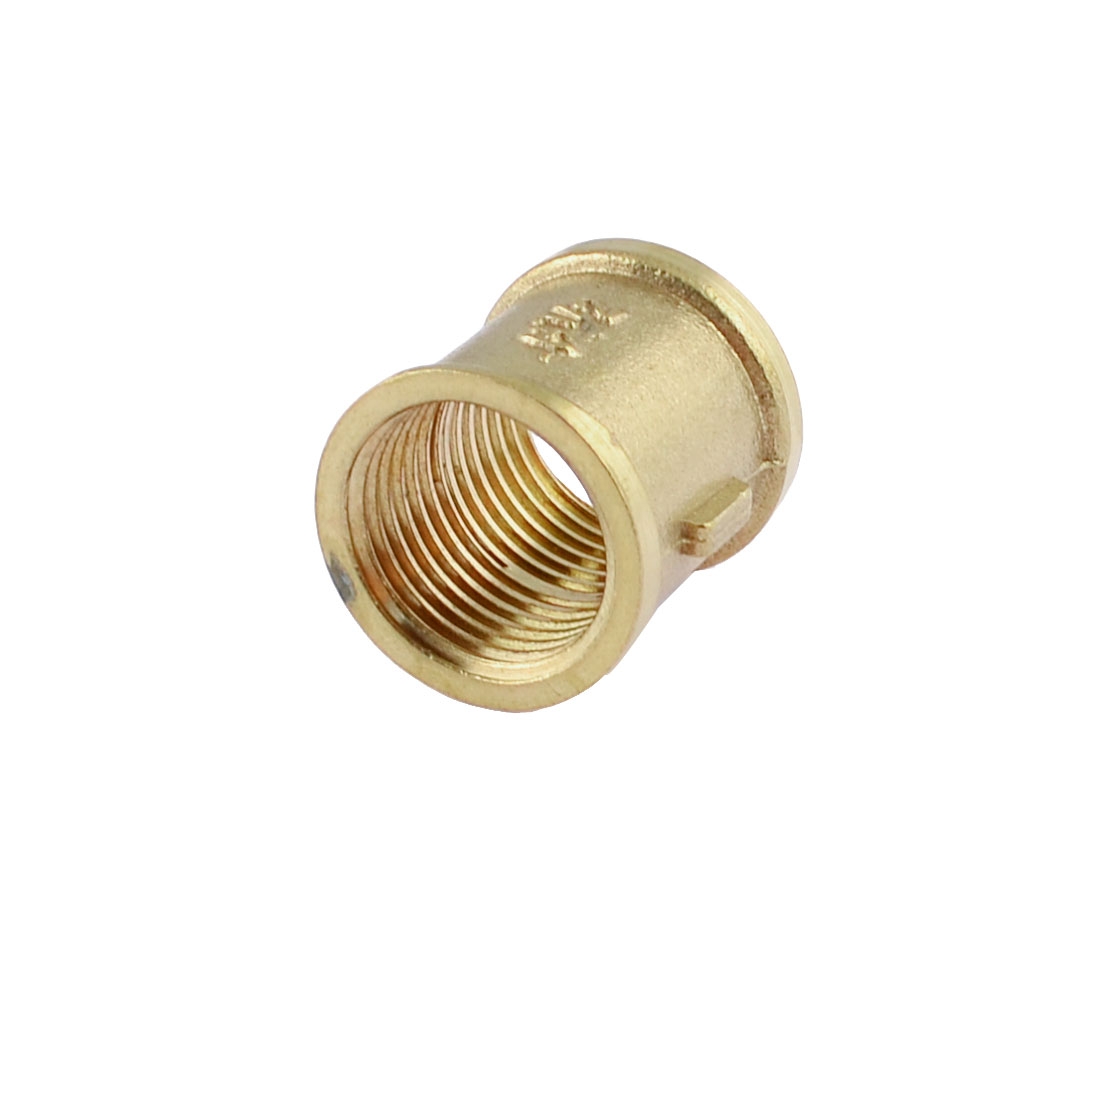 "Brass 1/2"" NPT Female Thread Straight Connector Pneumatic Quick Coupler"